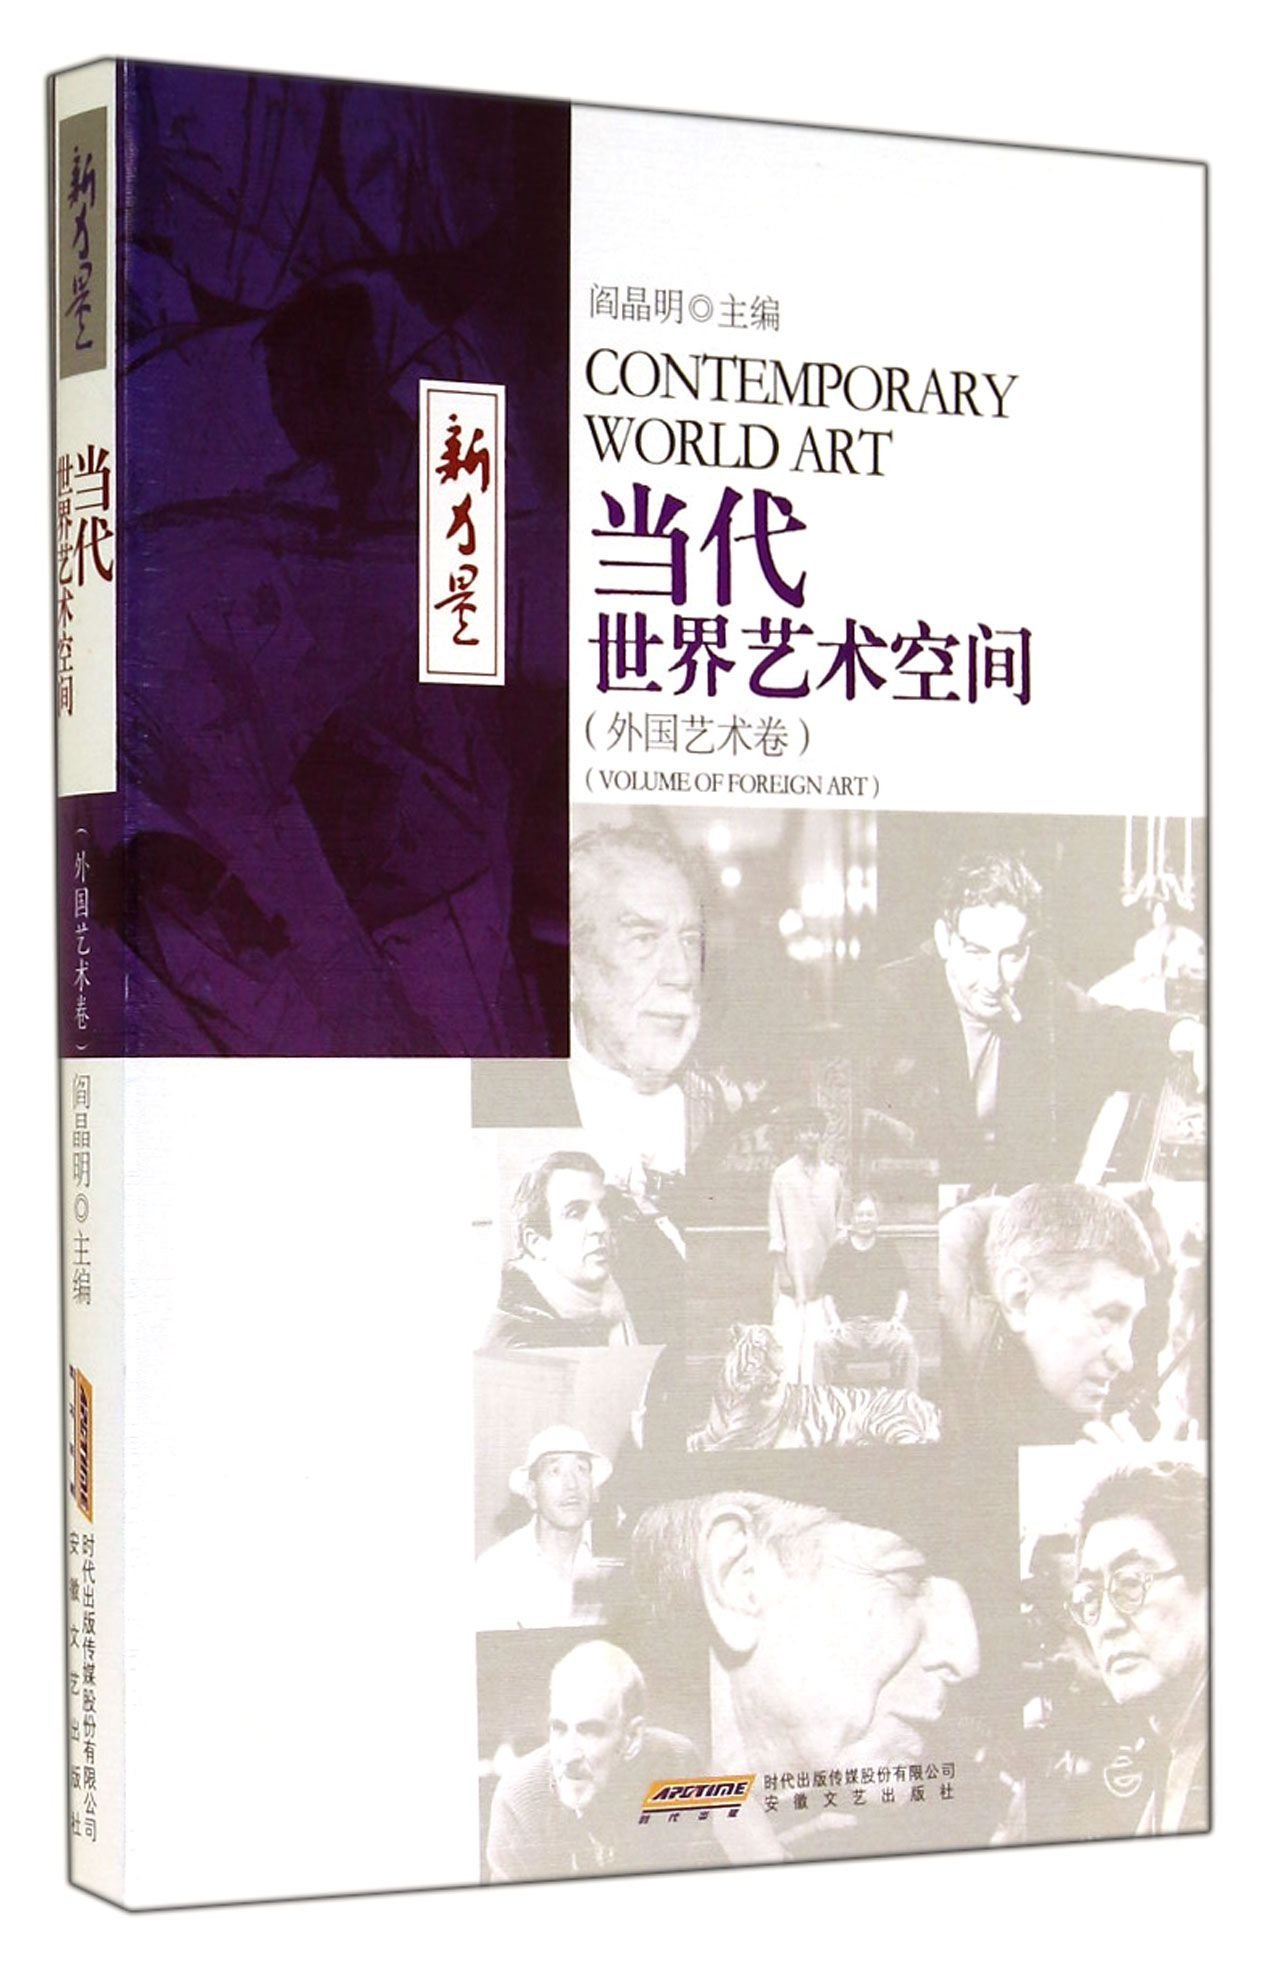 Download New Force book bundle: Contemporary World Art Space (foreign art volumes)(Chinese Edition) pdf epub